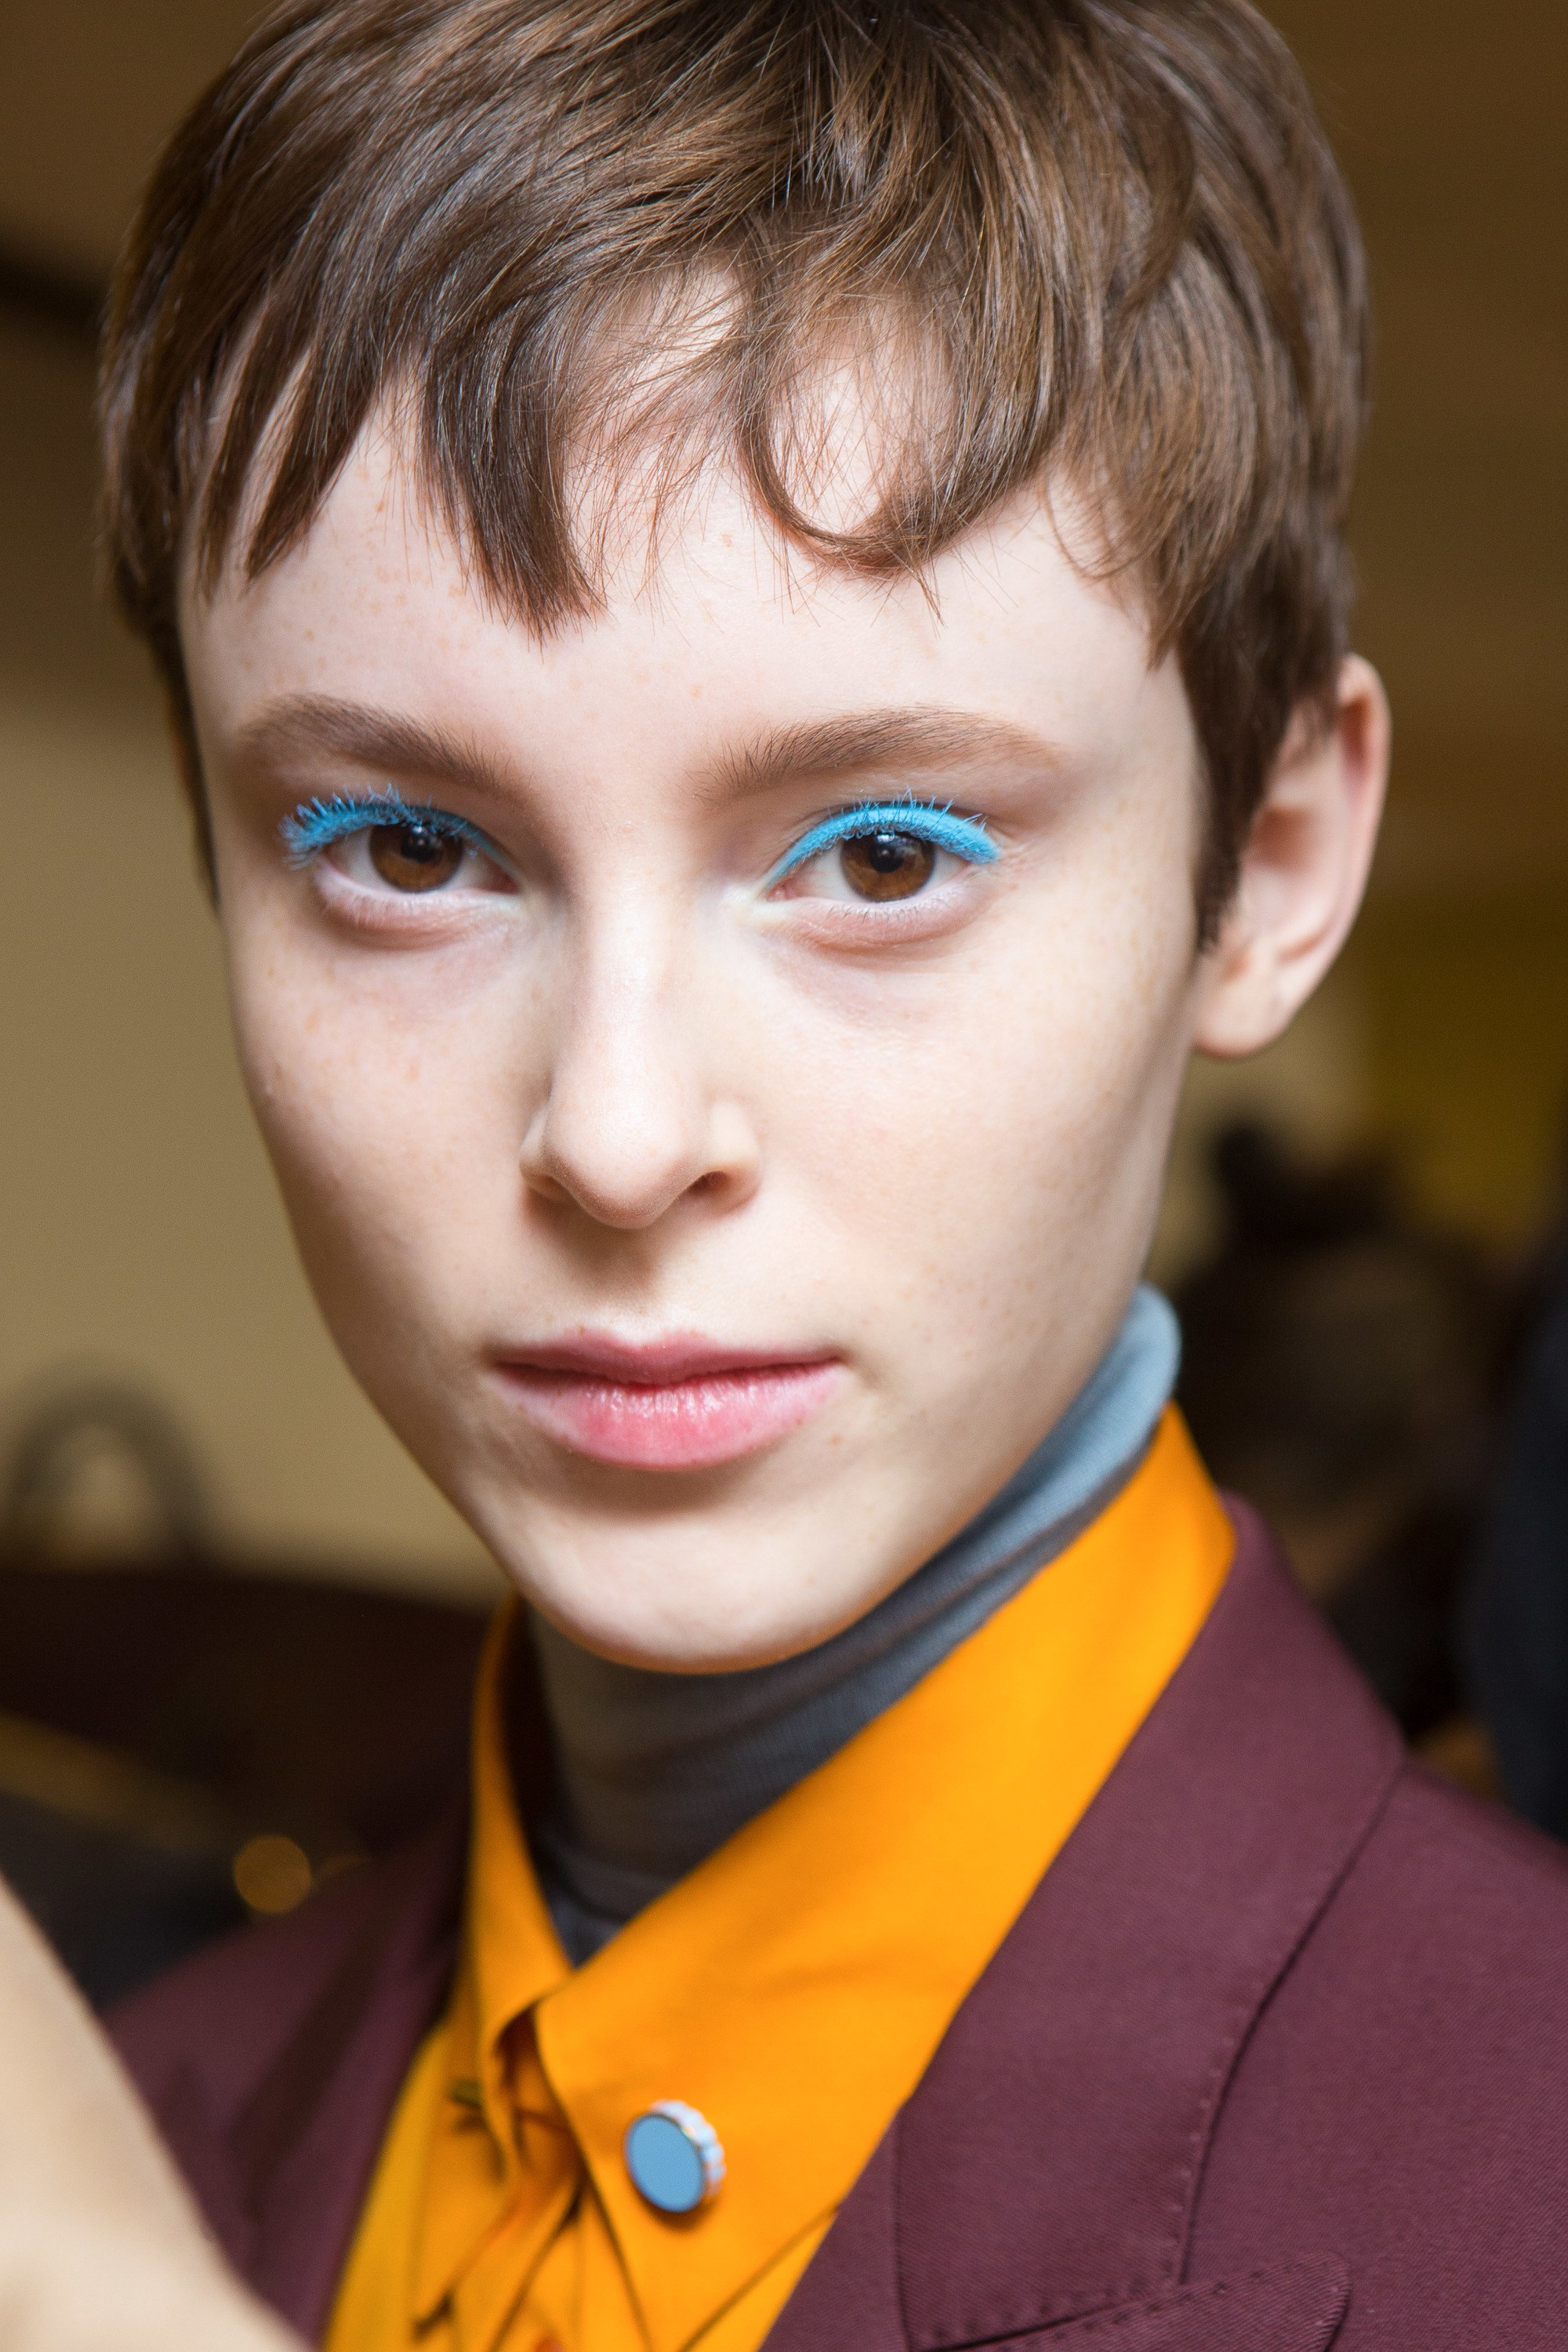 Thinning hair: Close-up shot of a woman with a short brunette pixie cut, wearing bright eye makeup